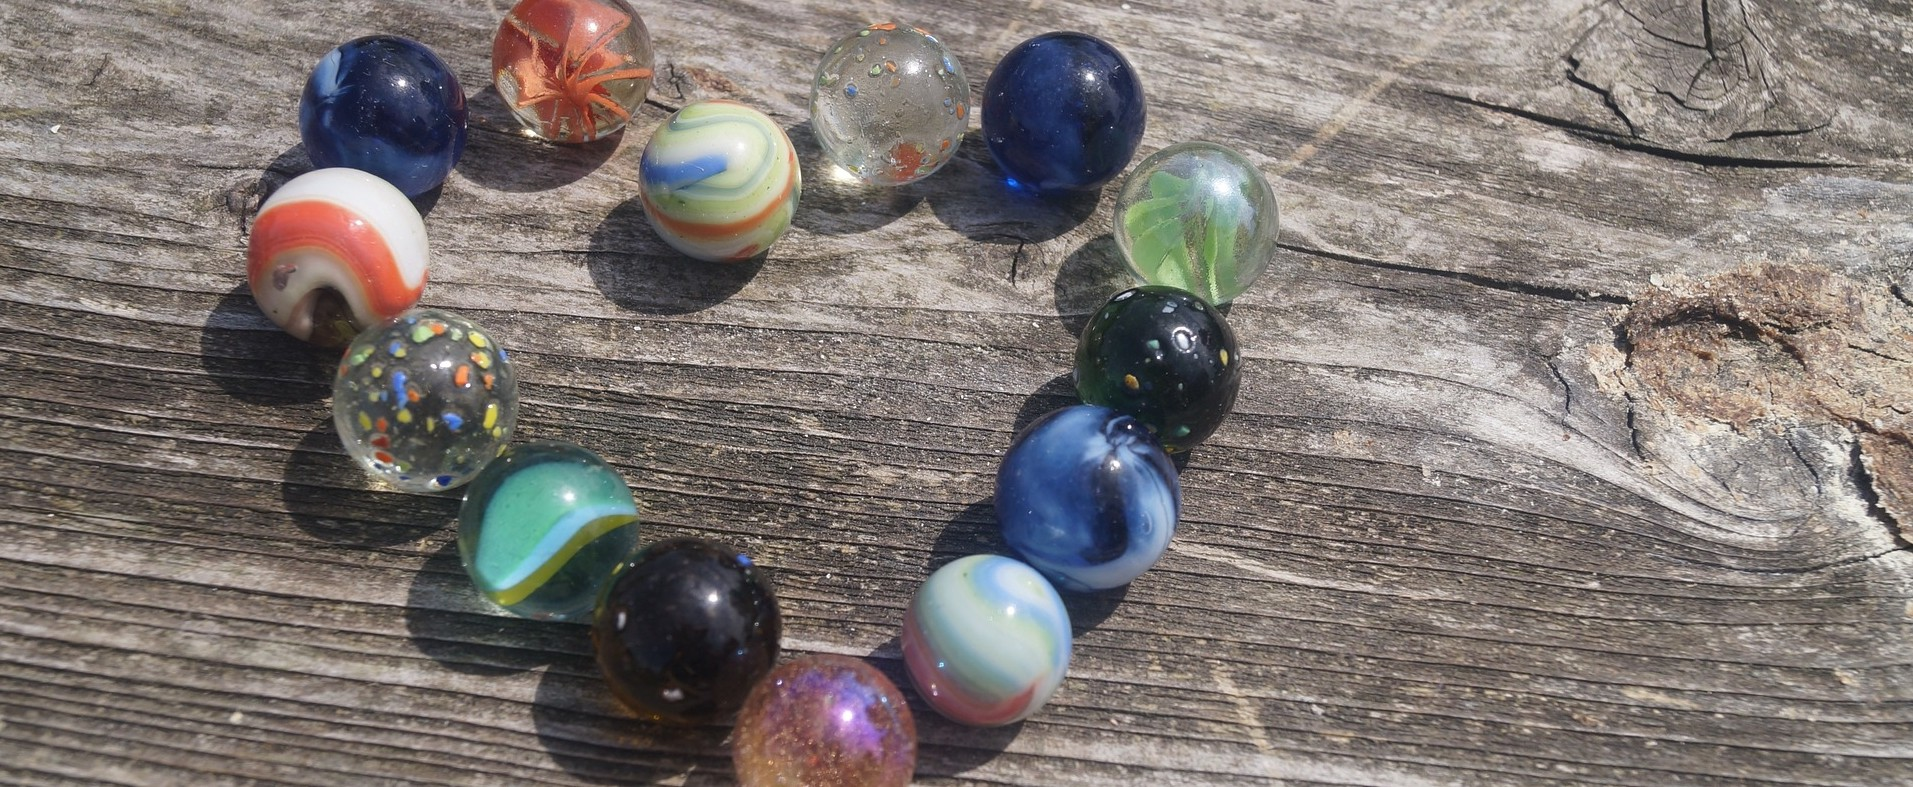 Multi-colored marbles placed in the shape of a heart on top of a wooden bench